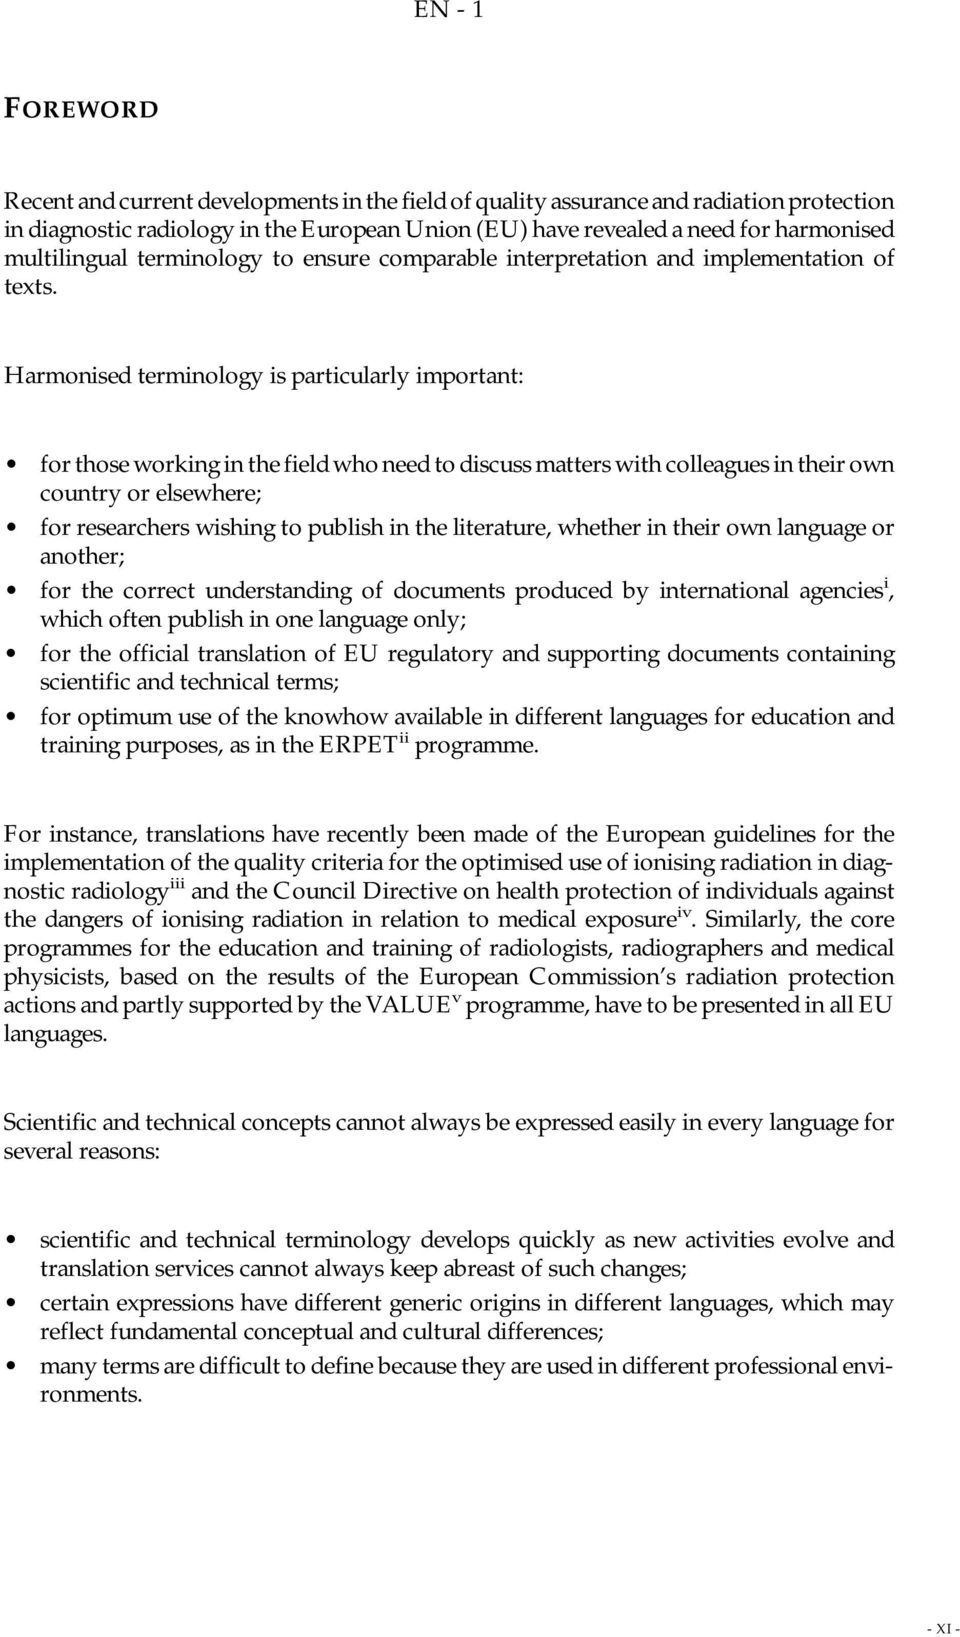 Harmonised terminology is particularly important: for those working in the field who need to discuss matters with colleagues in their own country or elsewhere; for researchers wishing to publish in